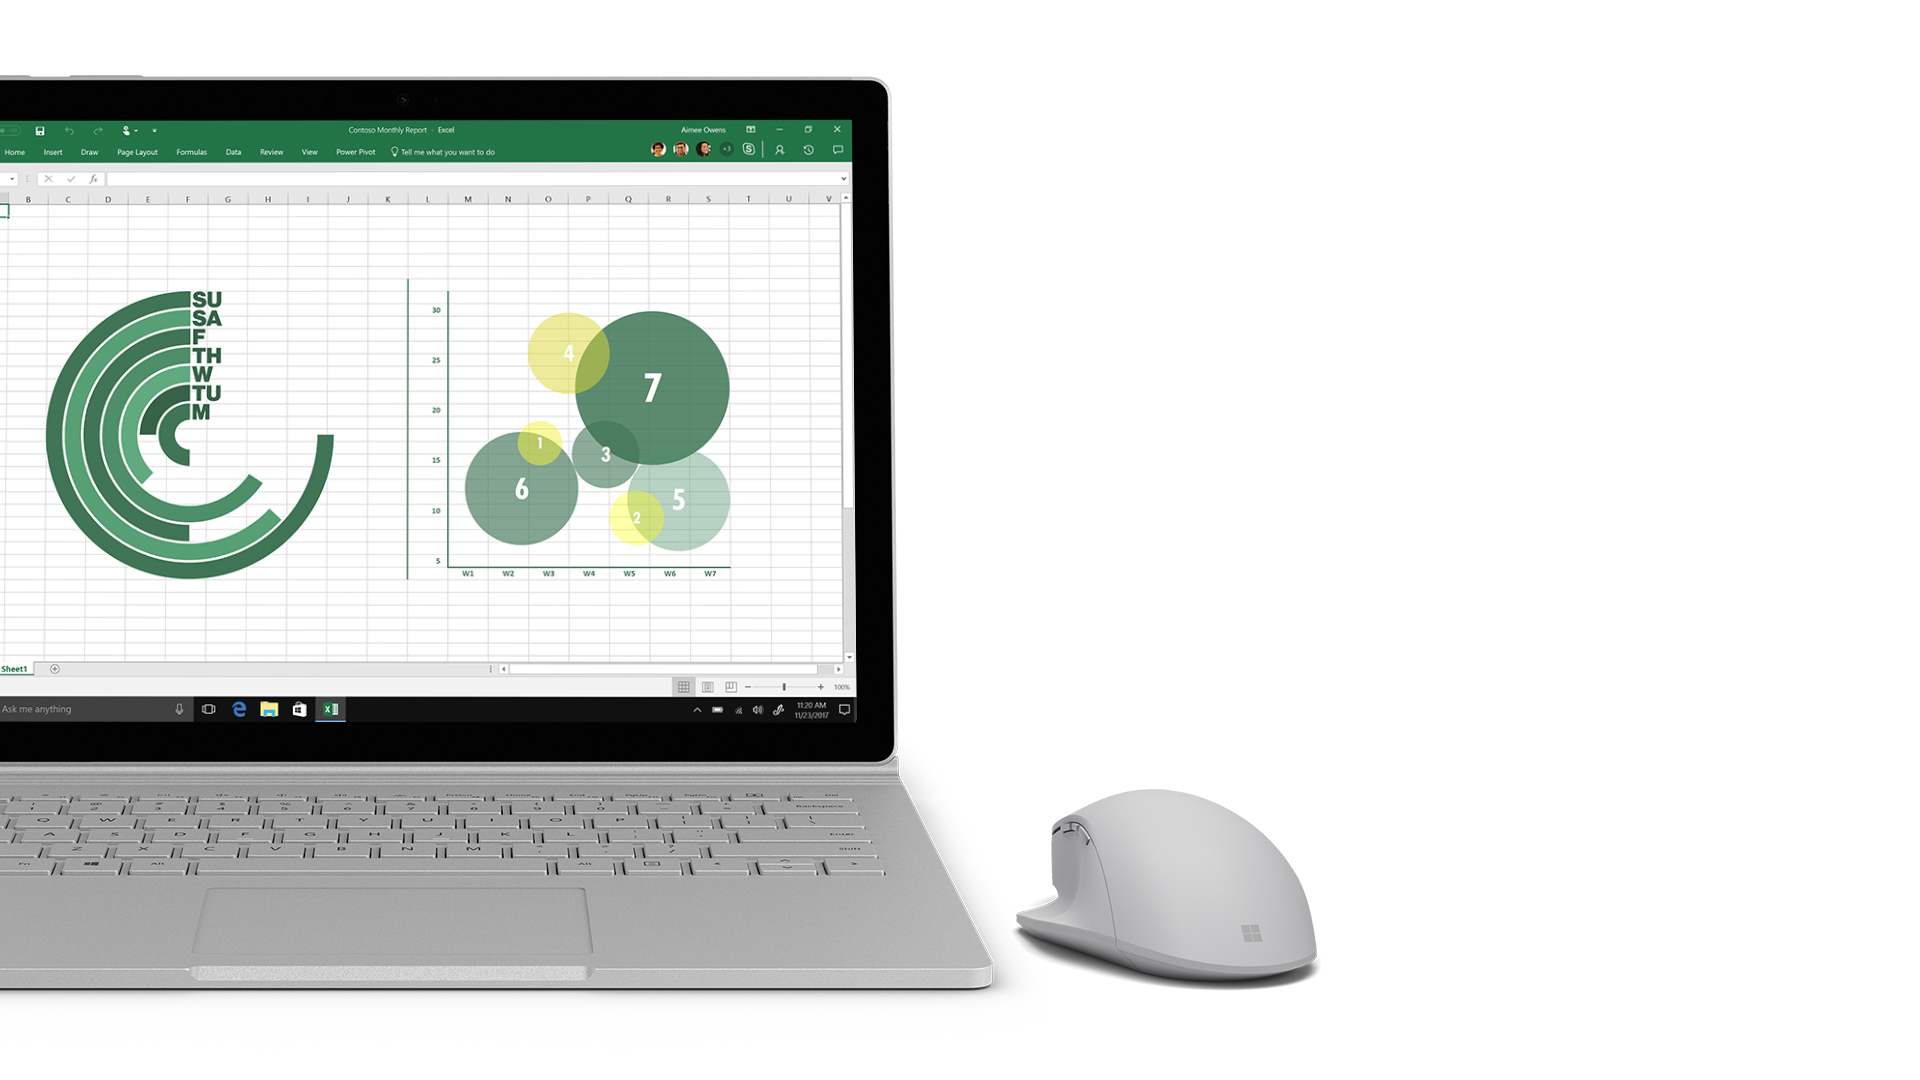 Excel screenshot on Surface.